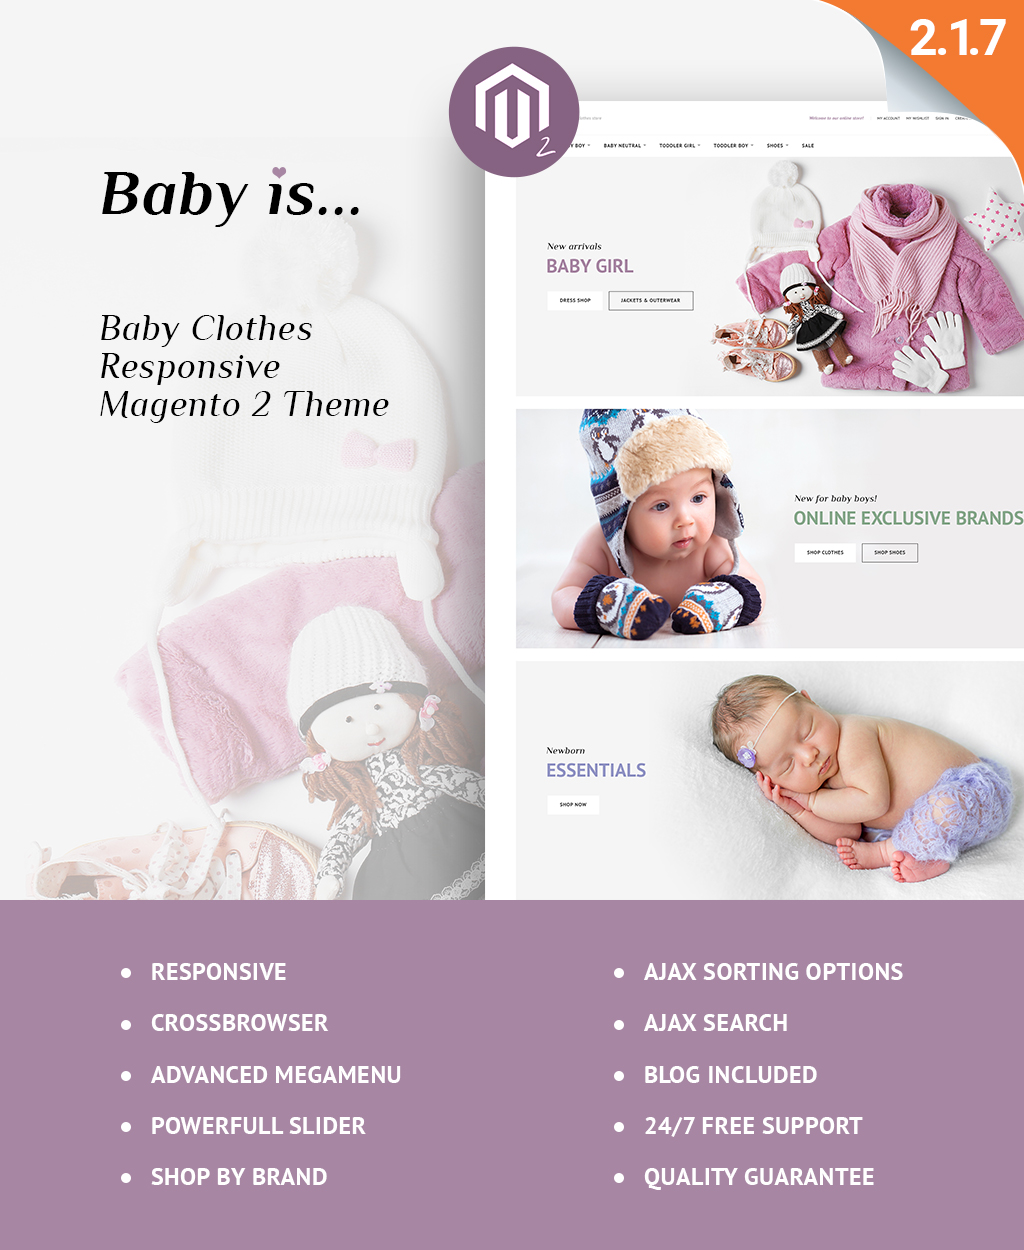 Reszponzív Babyis - Baby Clothes Store Responsive Magento sablon 63587